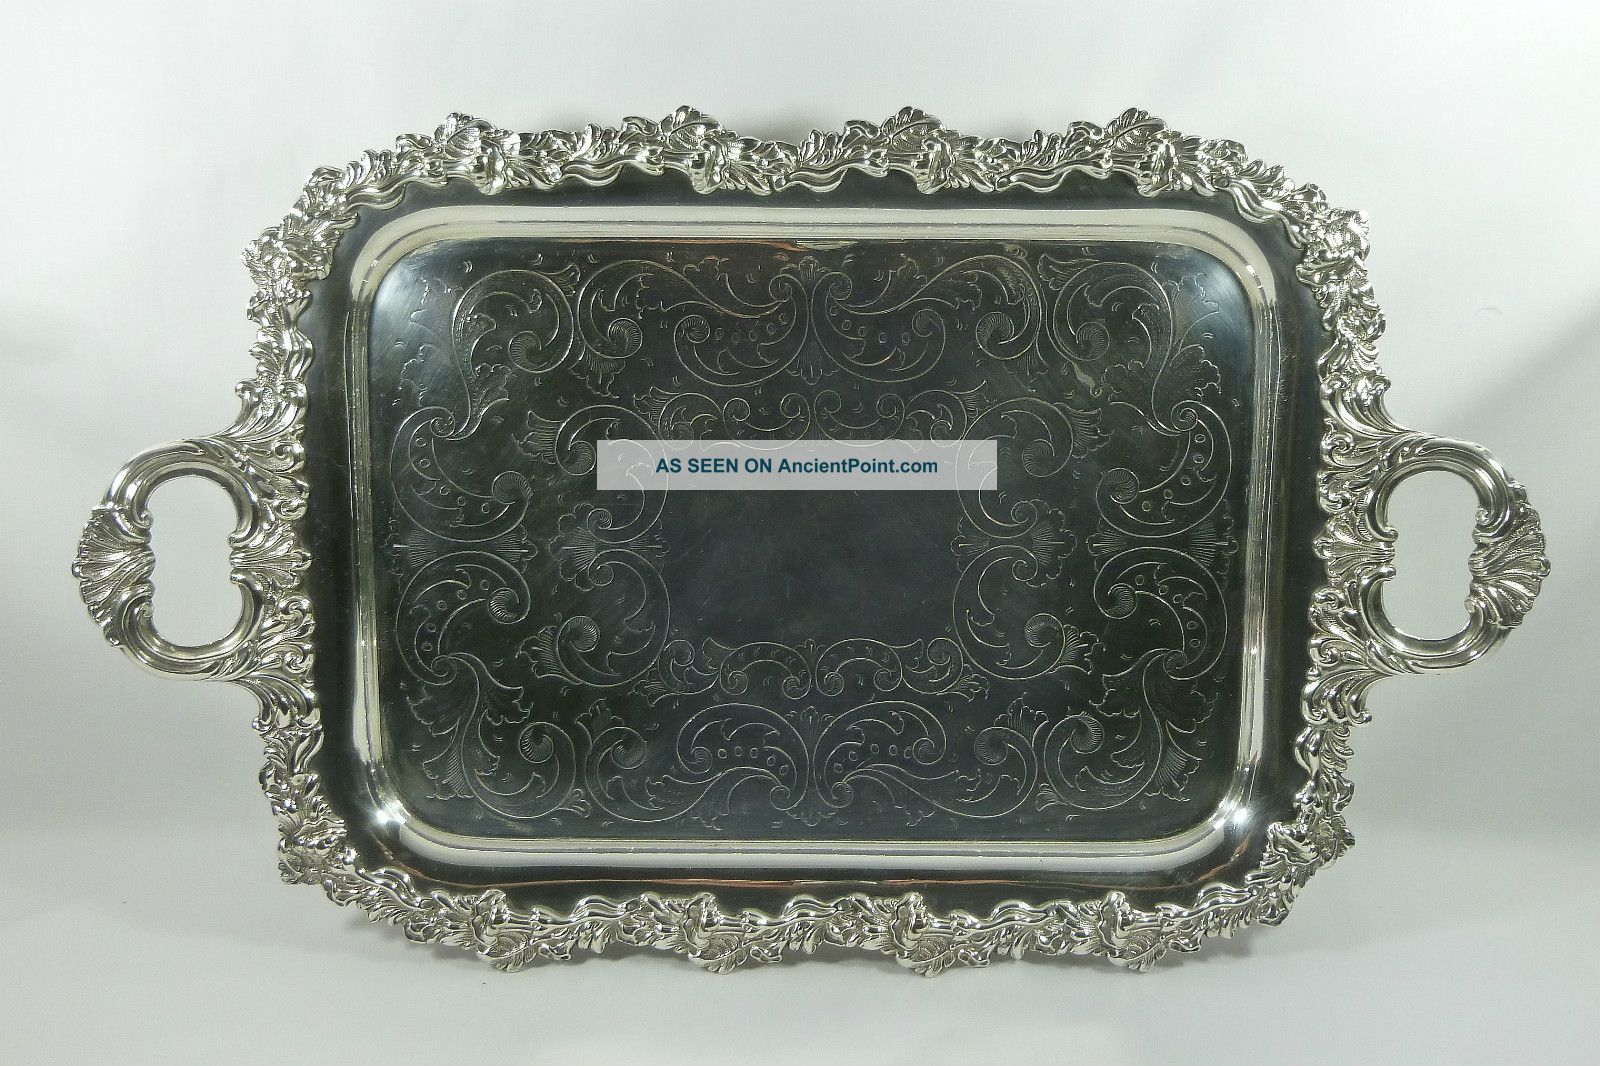 Fine Quality Large Antique Silver Plate Serving Platter Butlers Tray. Platters & Trays photo